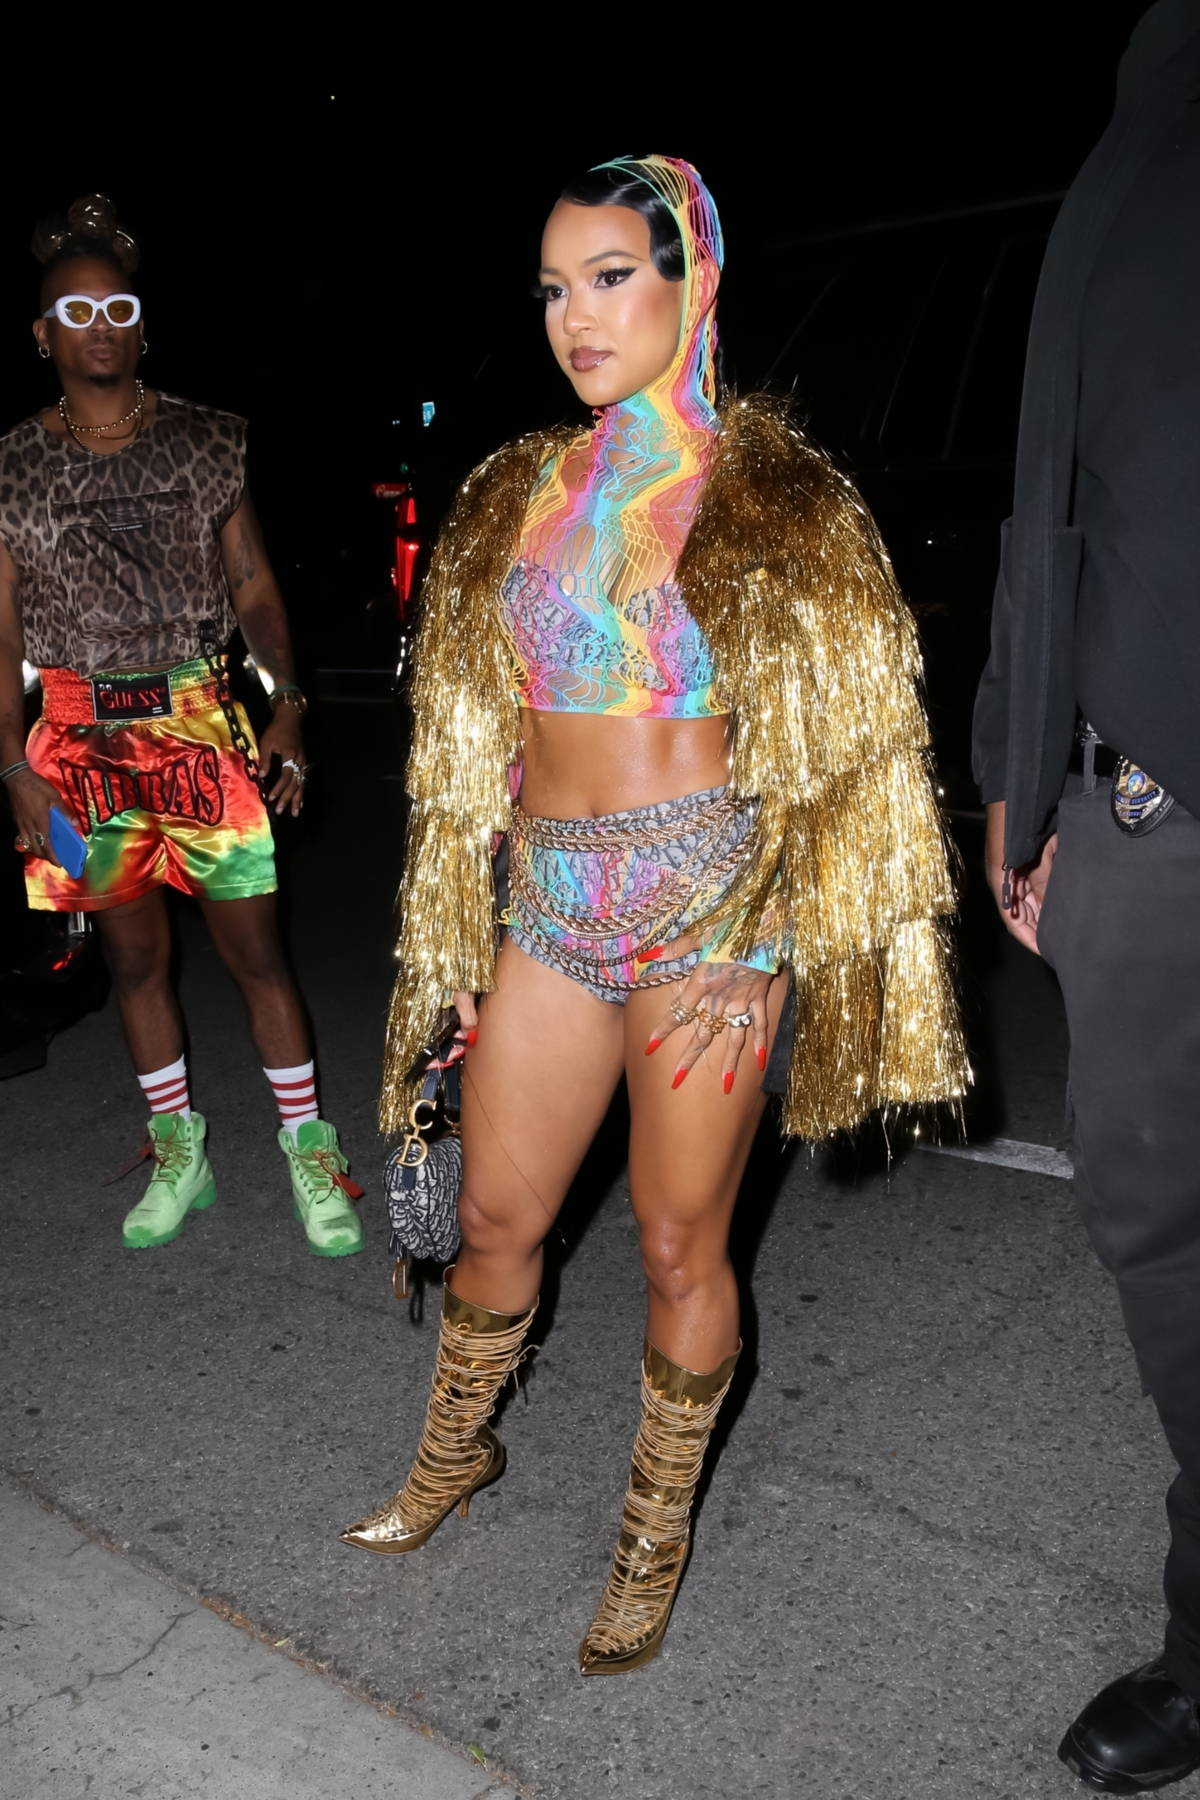 Karrueche Tran dazzles in a gold fringe coat with a colorful net outfit while attending Cardi b's 29th birthday party in Los Angeles